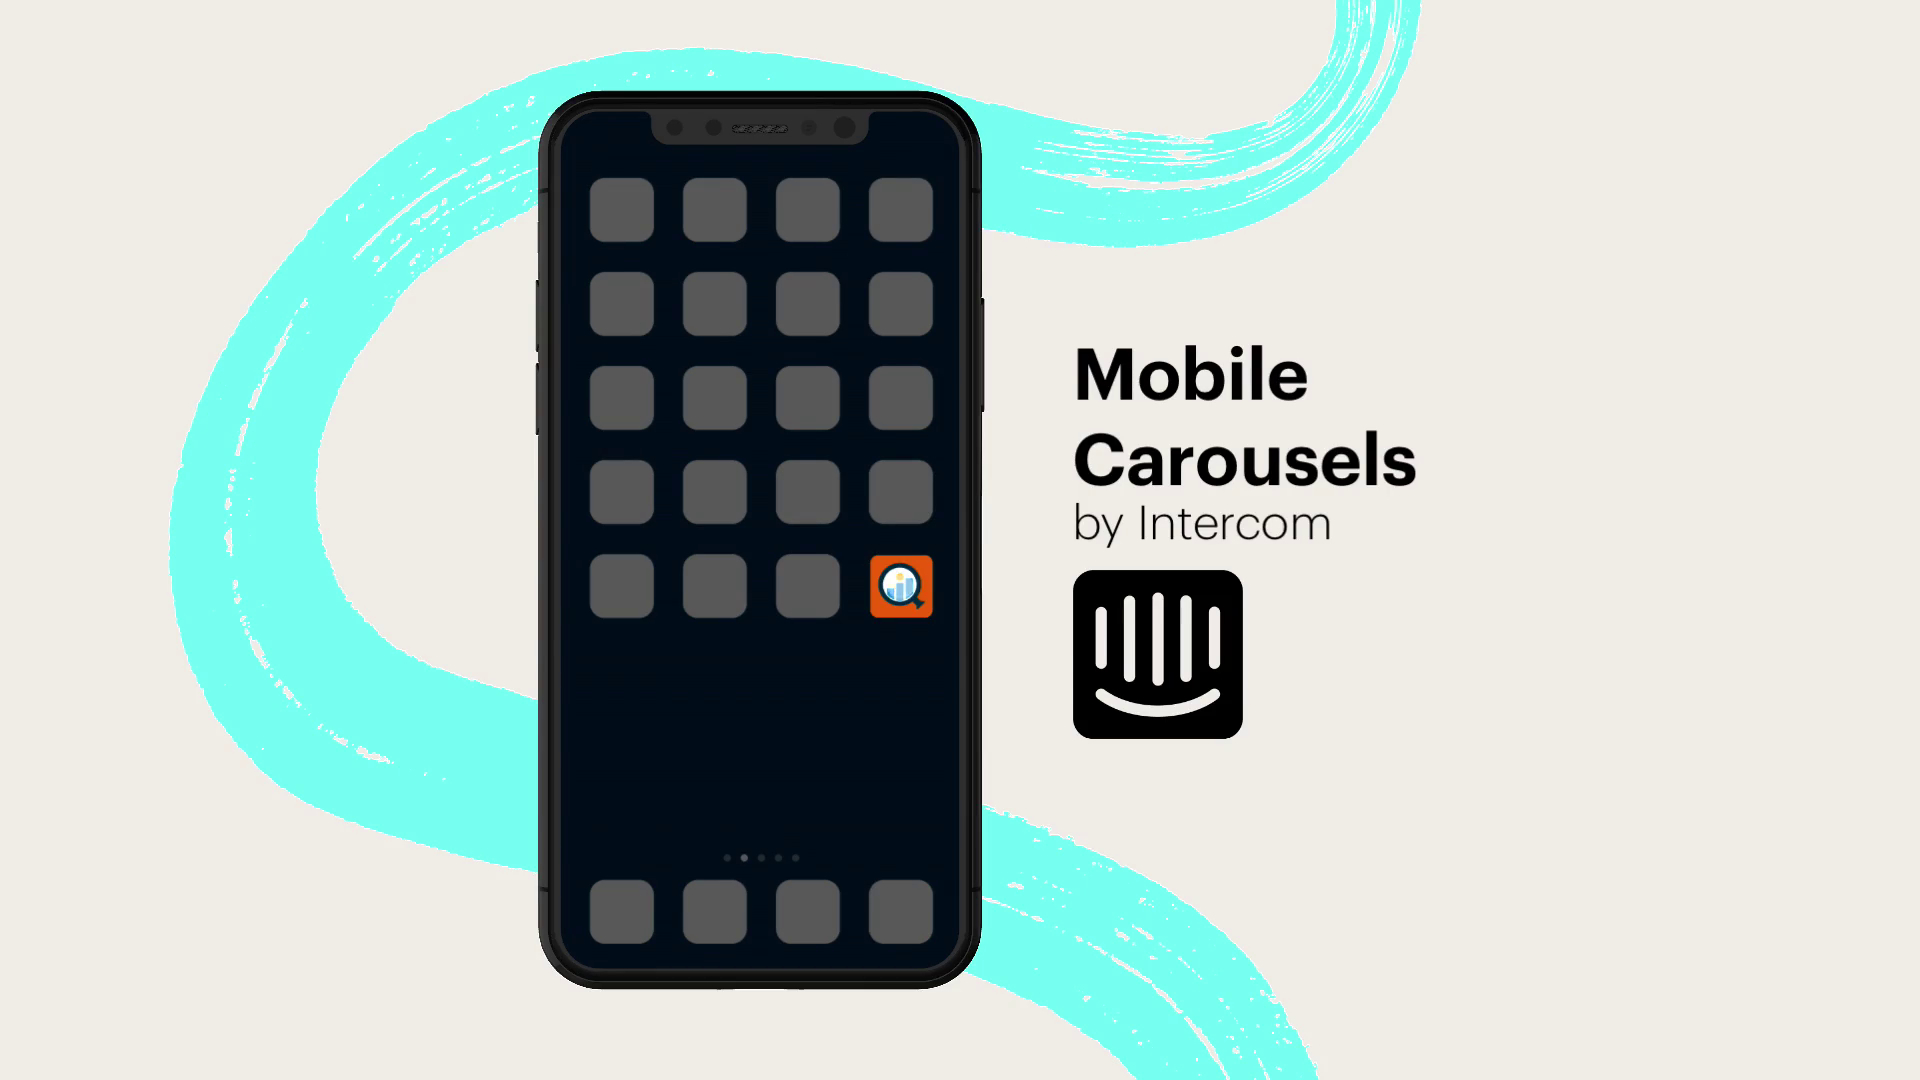 Intercom's Mobile Carousels